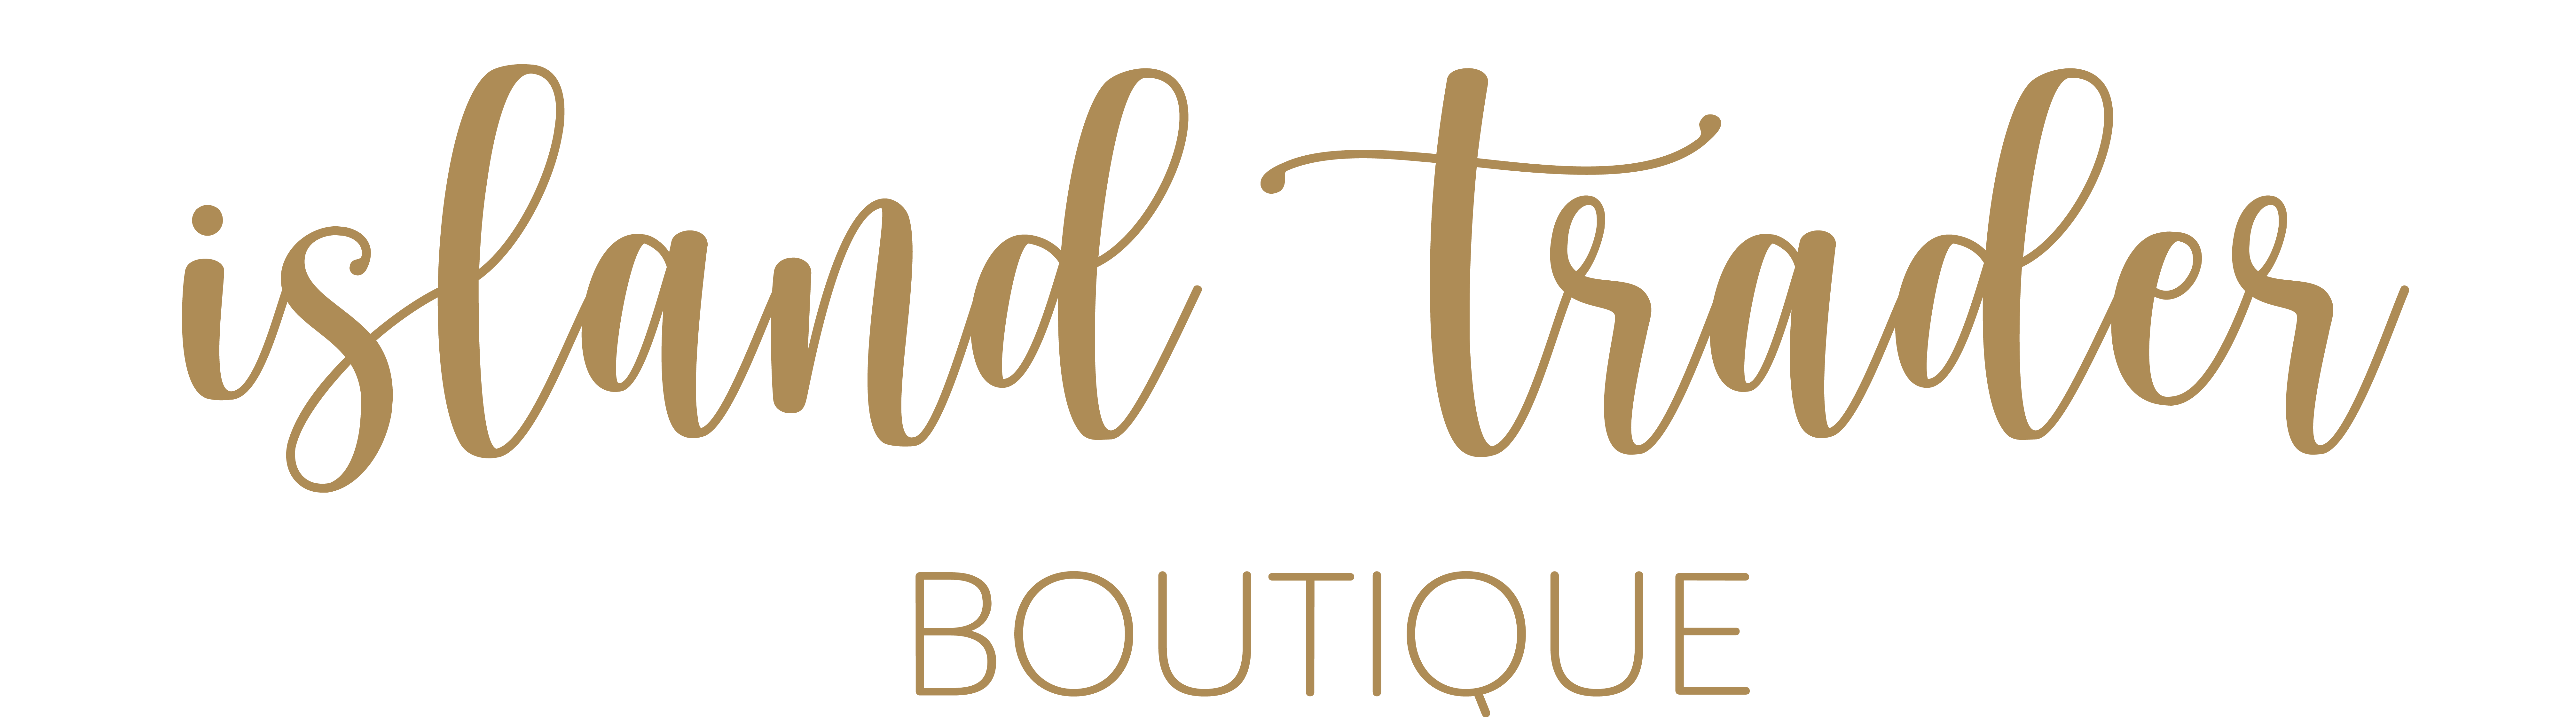 Shop Island Trader Boutique | Be on Island Time All the Time